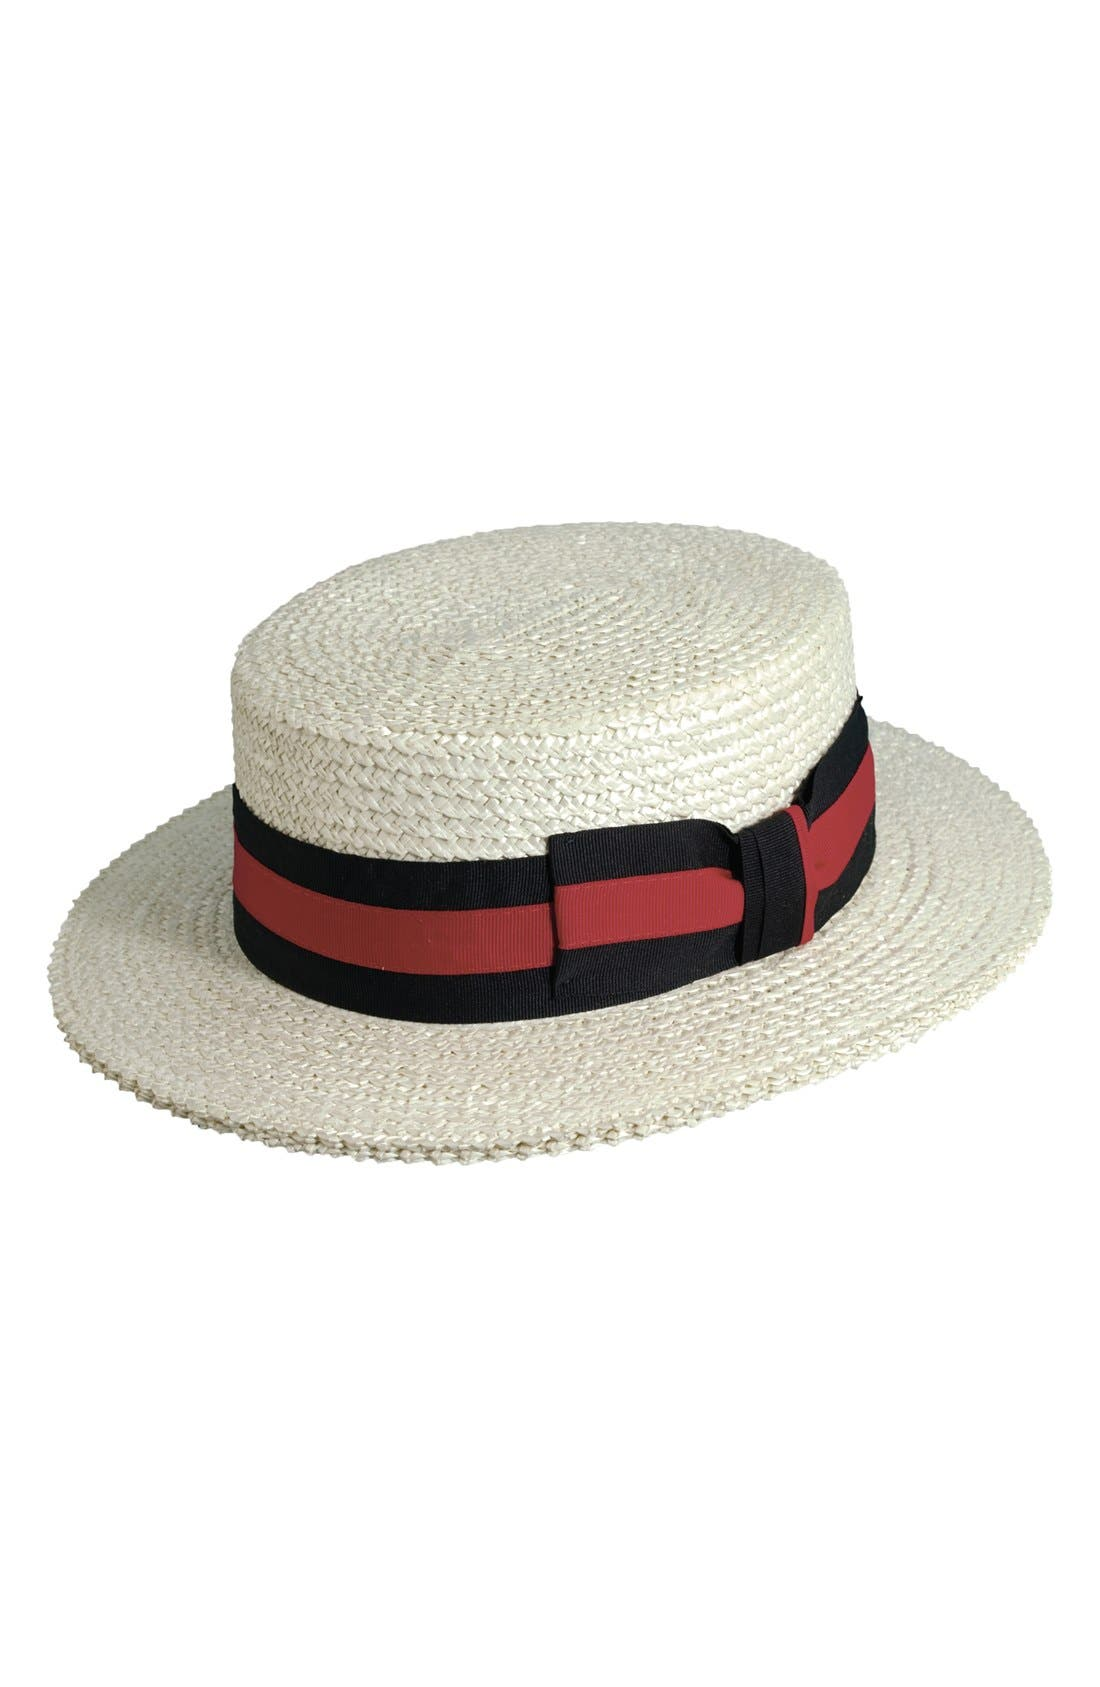 1920s Mens Hats & Caps | Gatsby, Peaky Blinders, Gangster Mens Scala Straw Boater Hat - White $63.00 AT vintagedancer.com